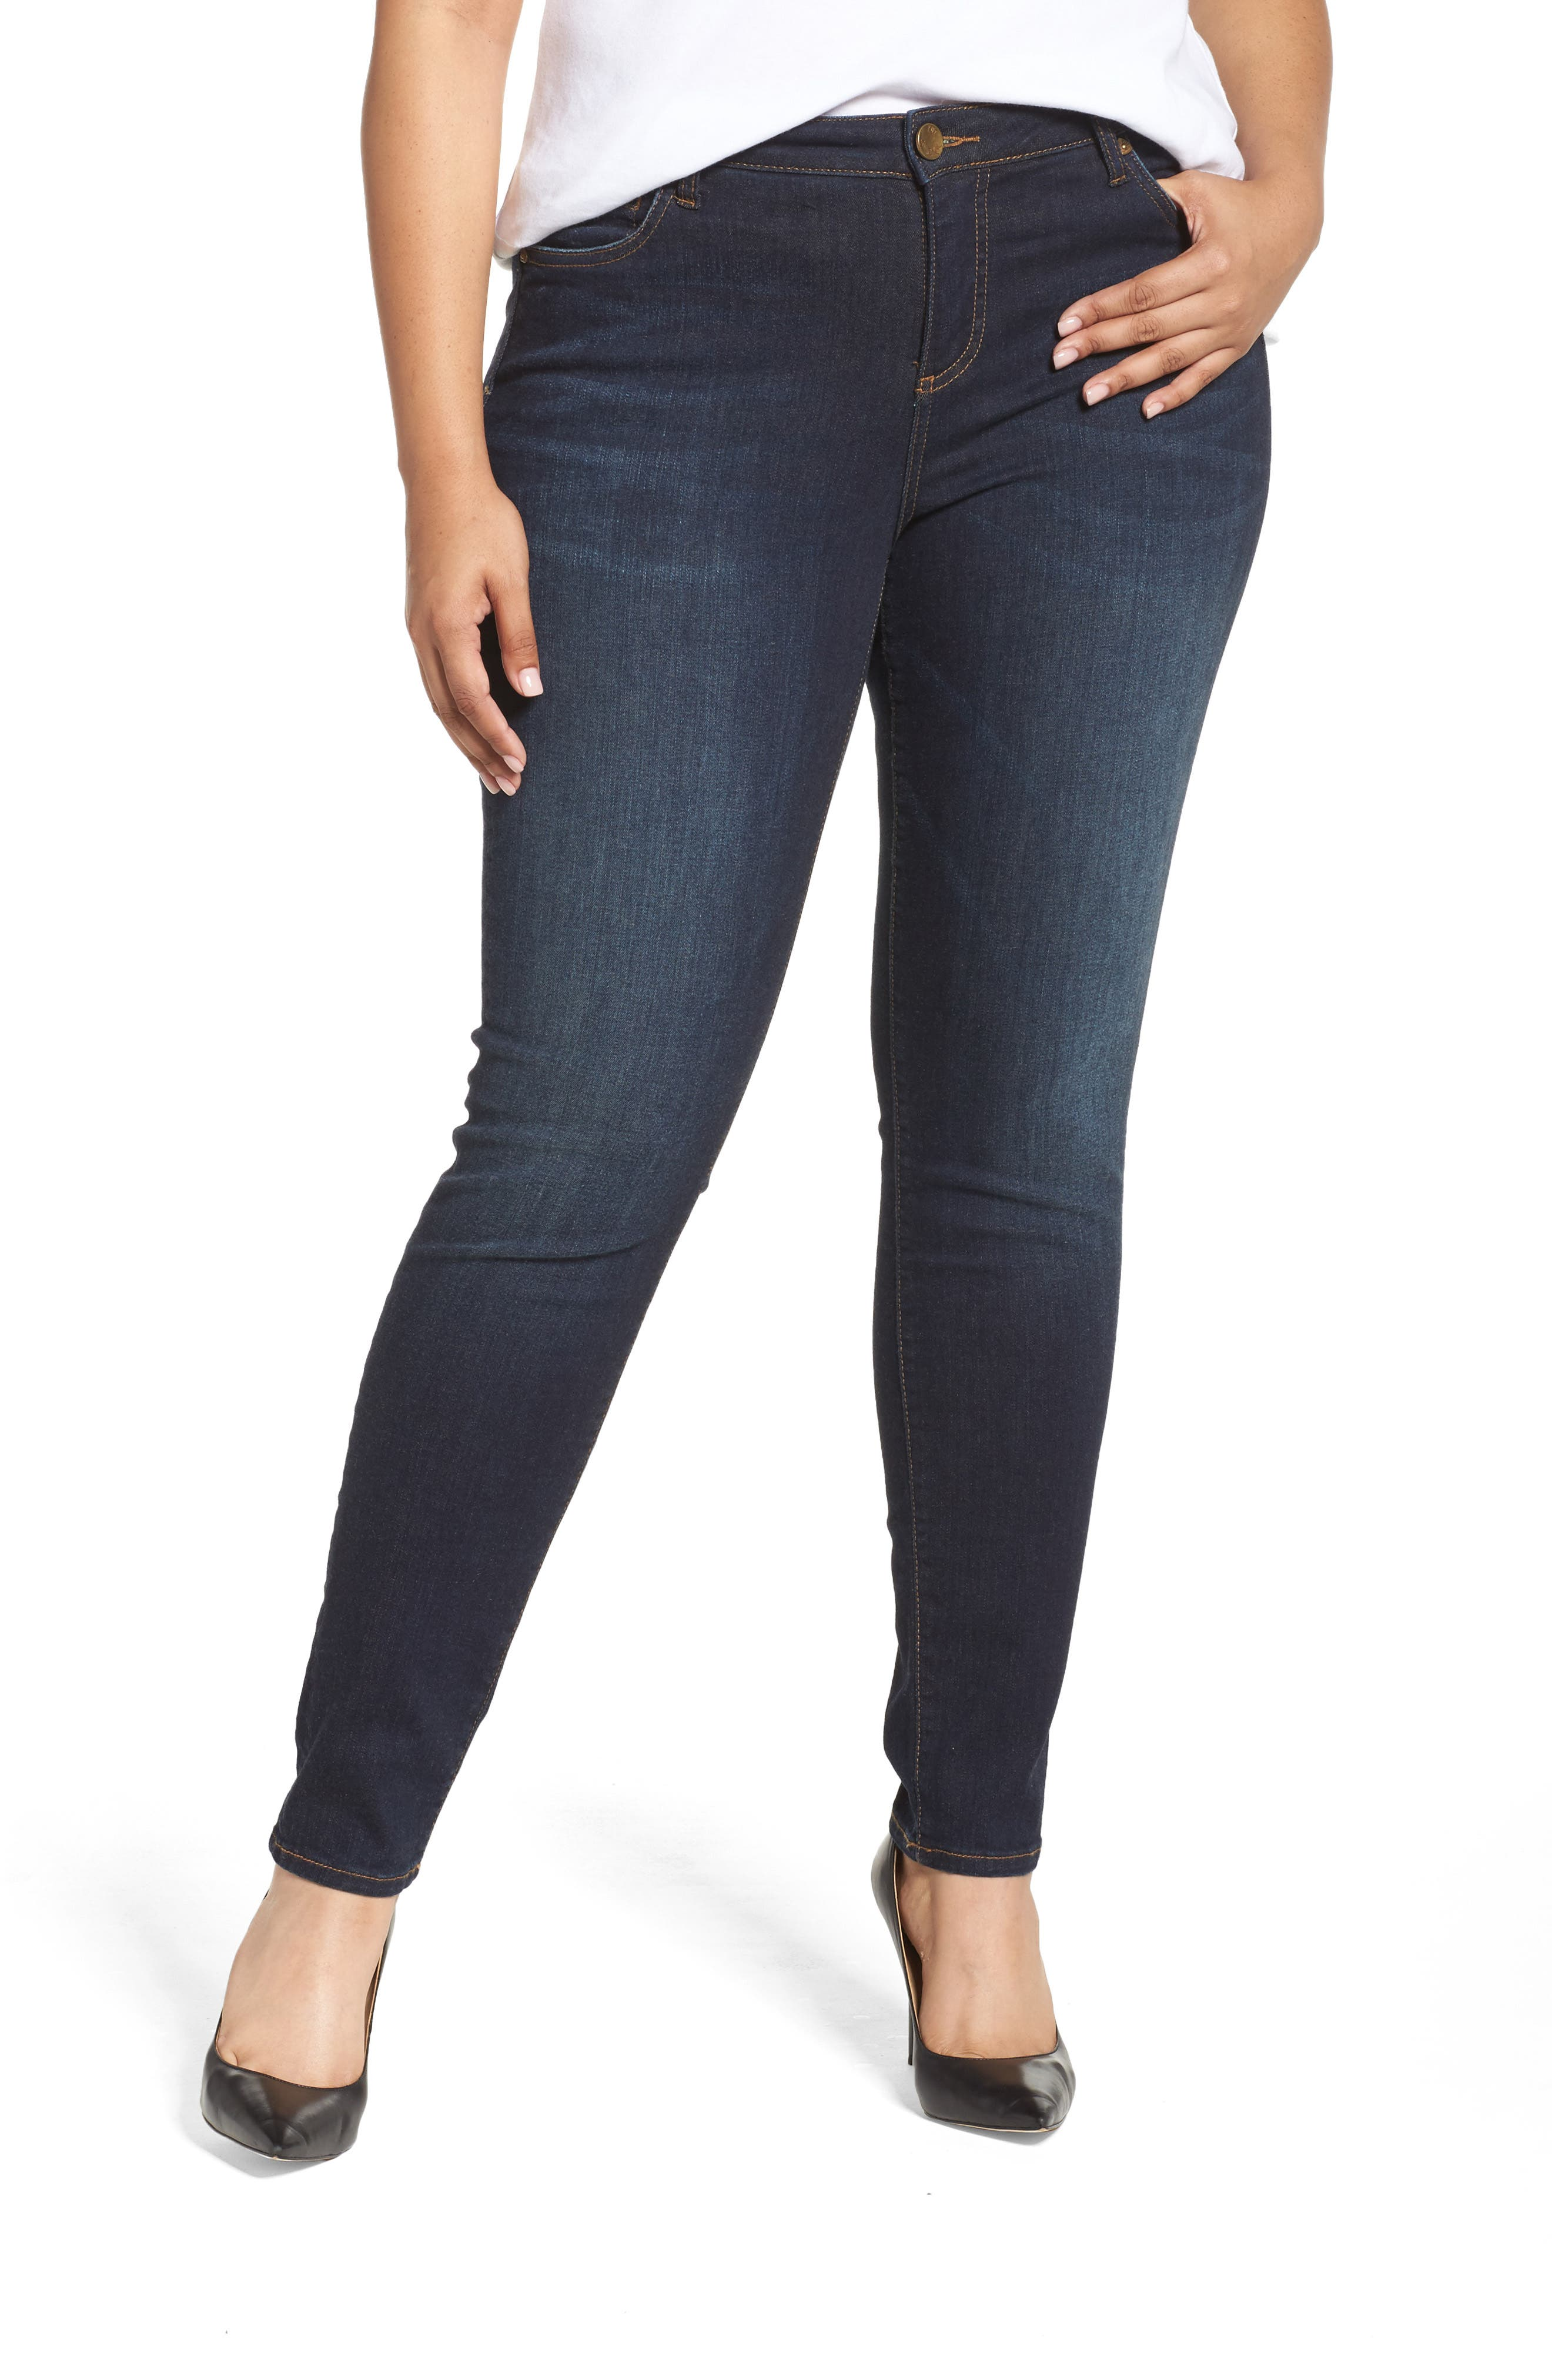 Diana Skinny Jeans,                         Main,                         color, Blinding W/ Euro Base Wash